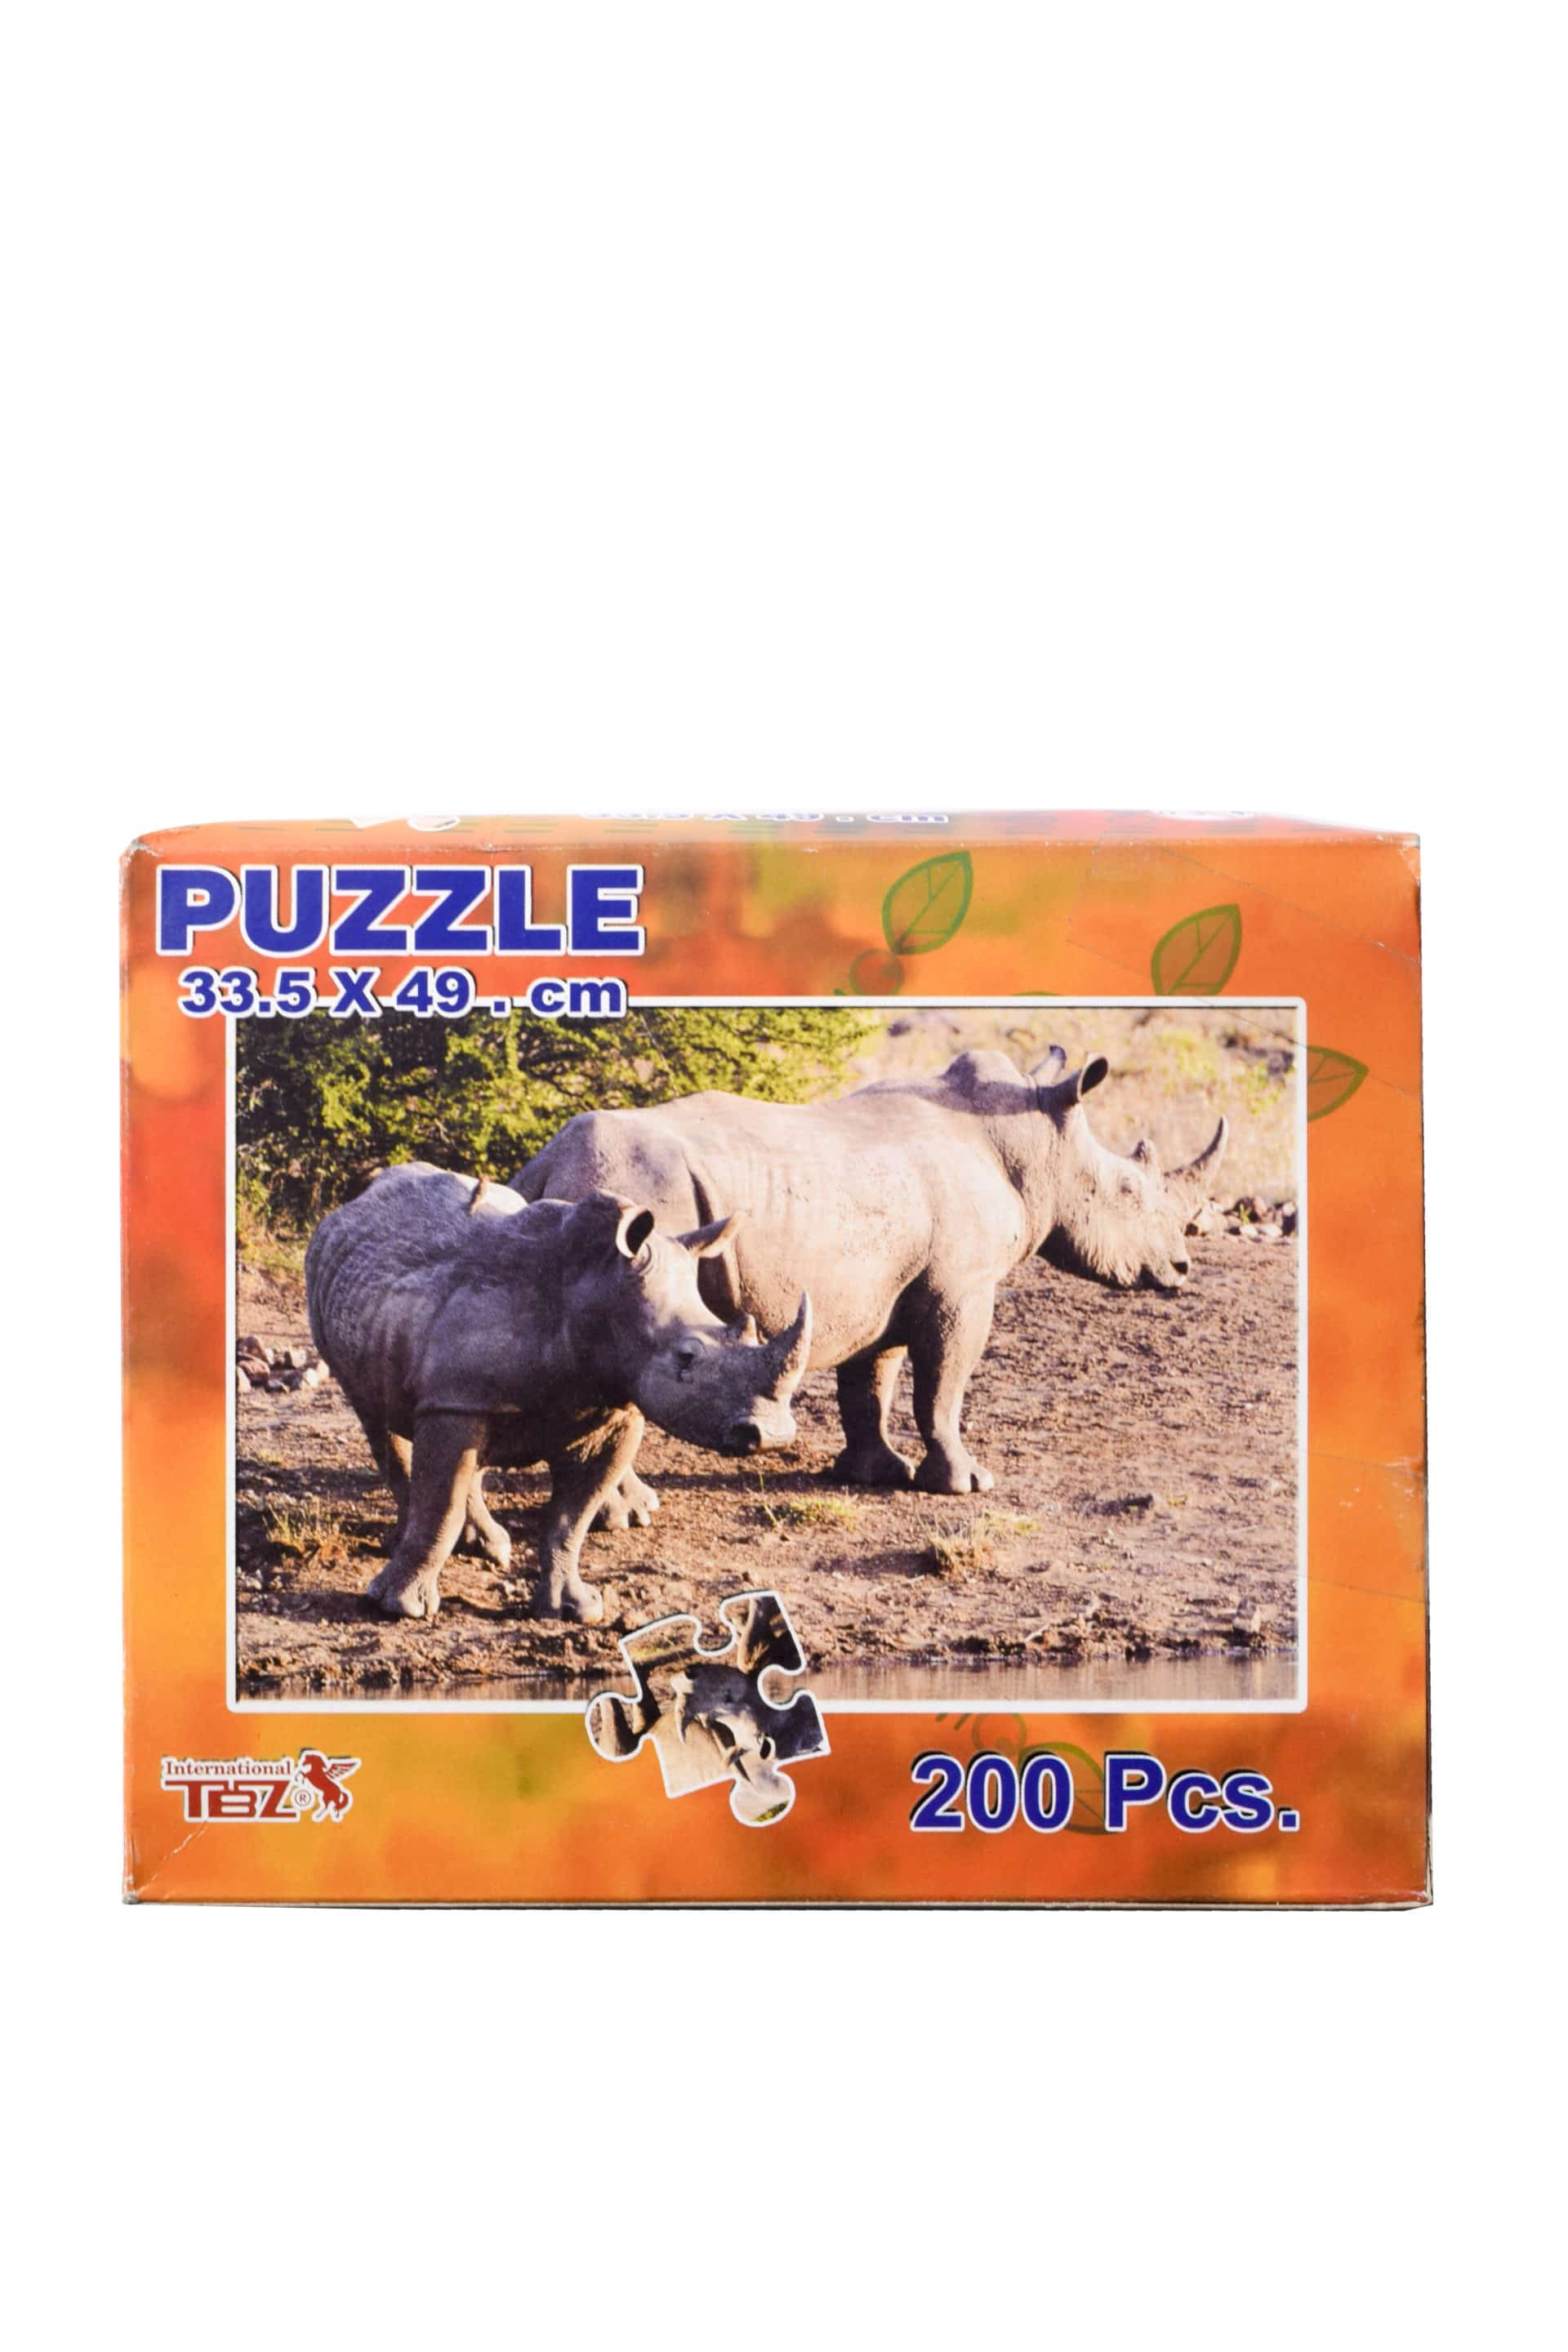 Puzzles 200 Piece Budget Type Cardboard (ideal as a Gift for Charity) 1